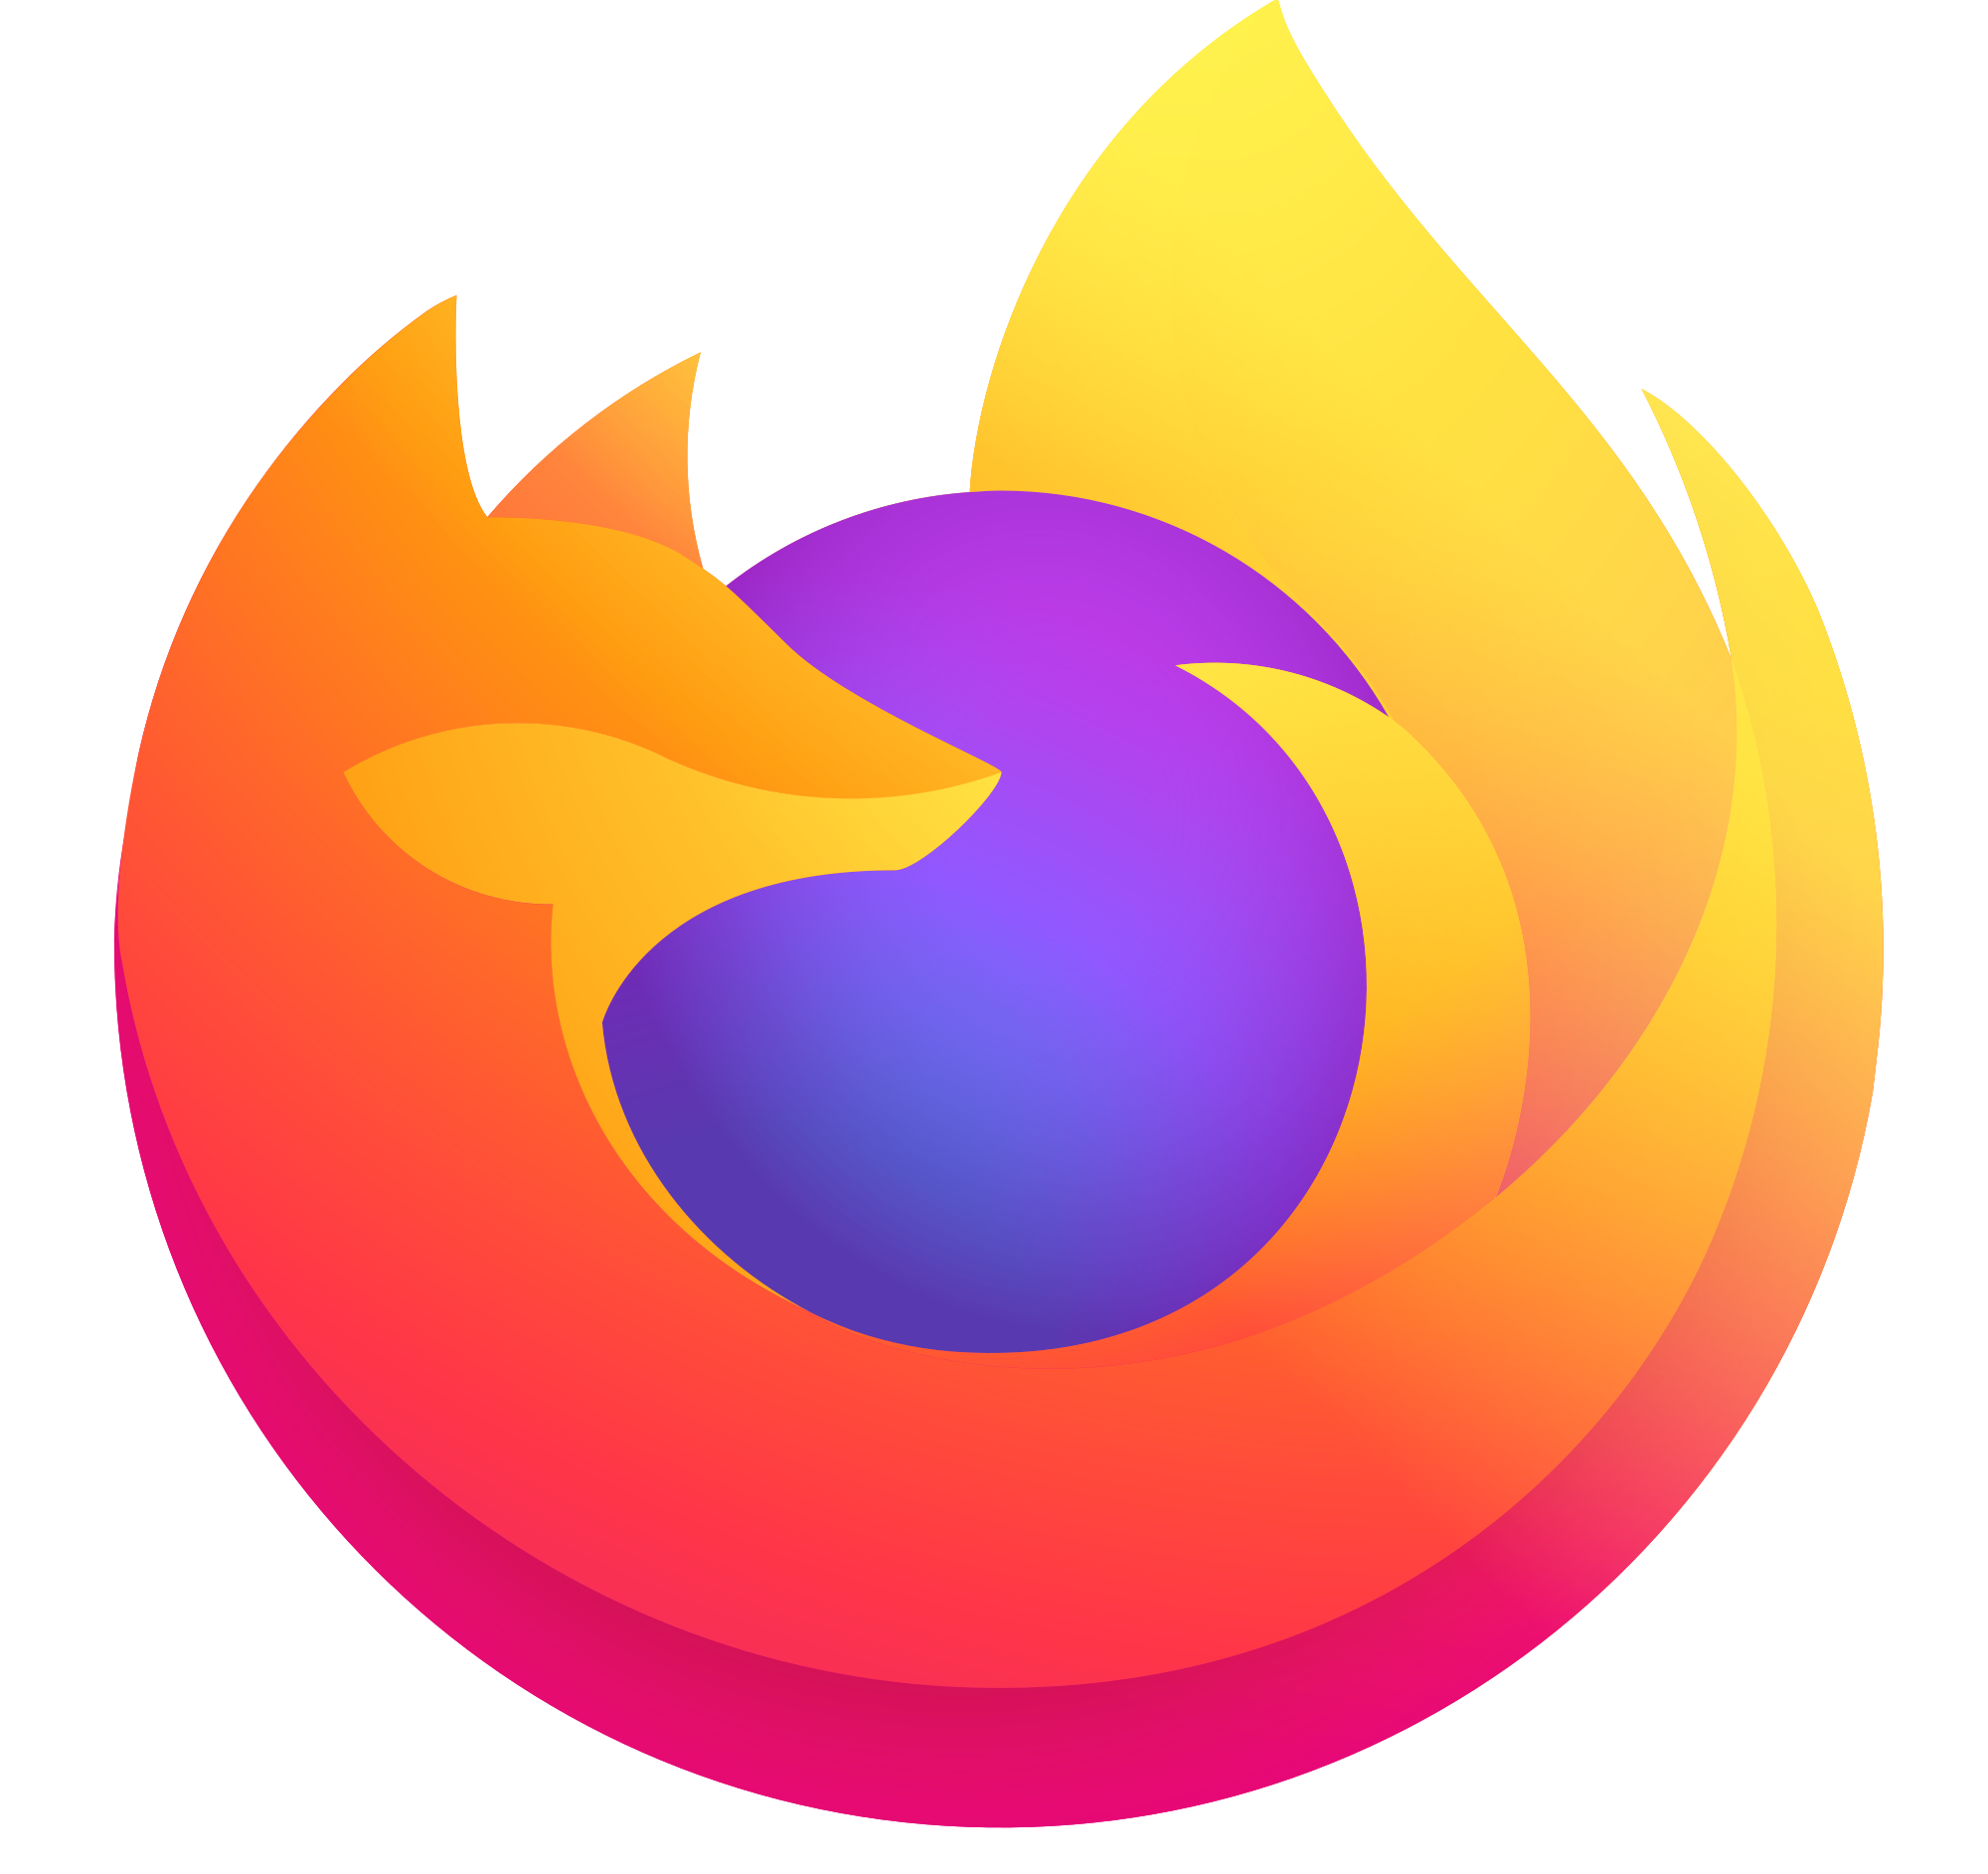 Файл:FirefoxLogo.png